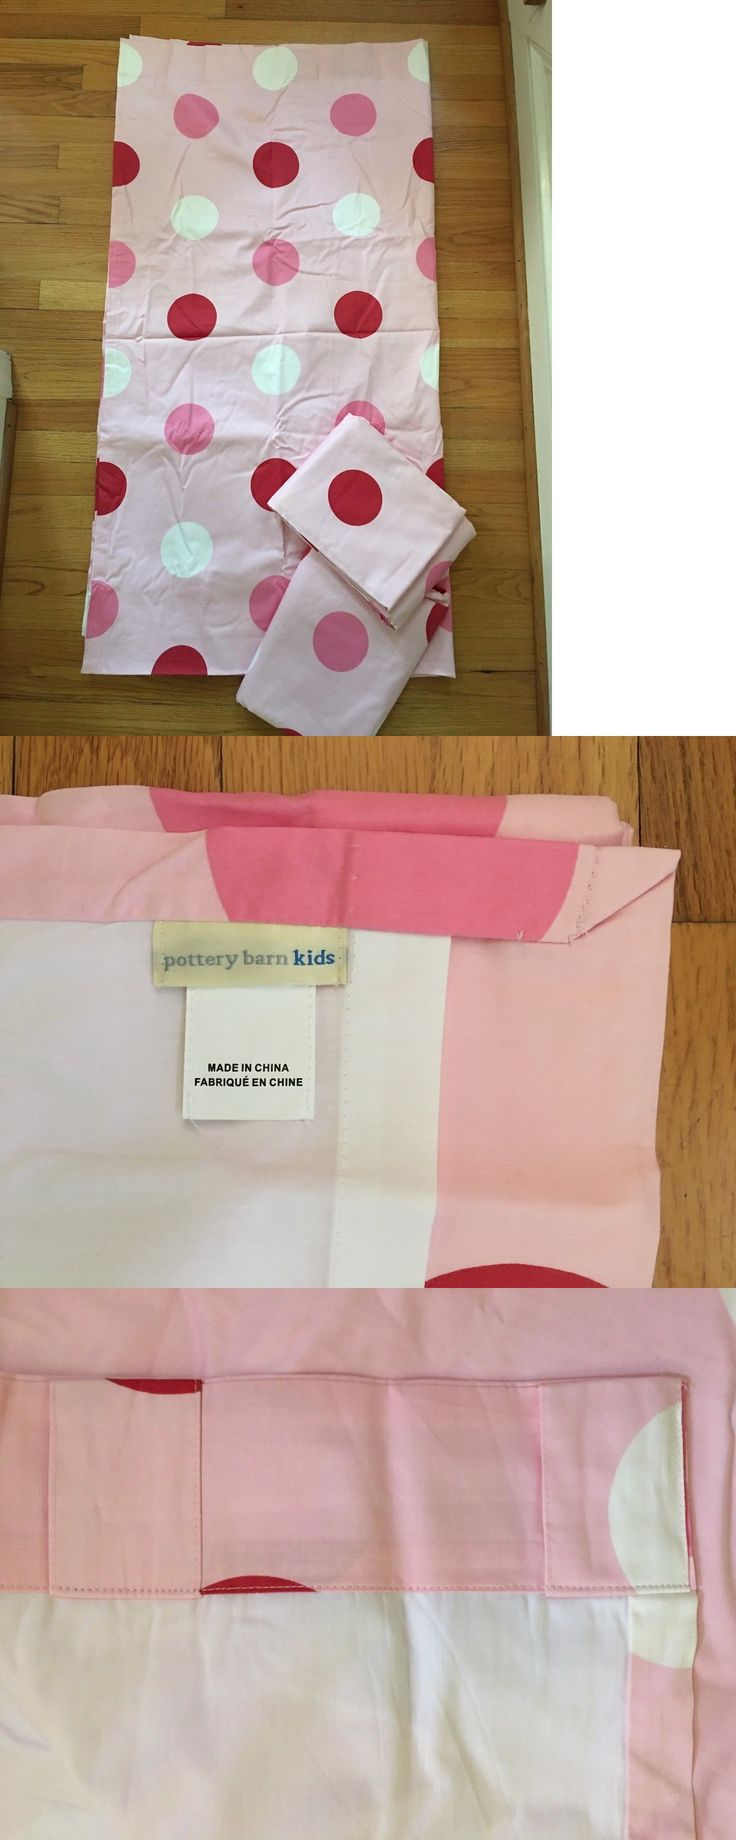 Window Treatments 116488: Lot Set Of 3 - New Pottery Barn Kids Allie Pink Polka Dots Lined Curtain Panels -> BUY IT NOW ONLY: $69.99 on eBay!